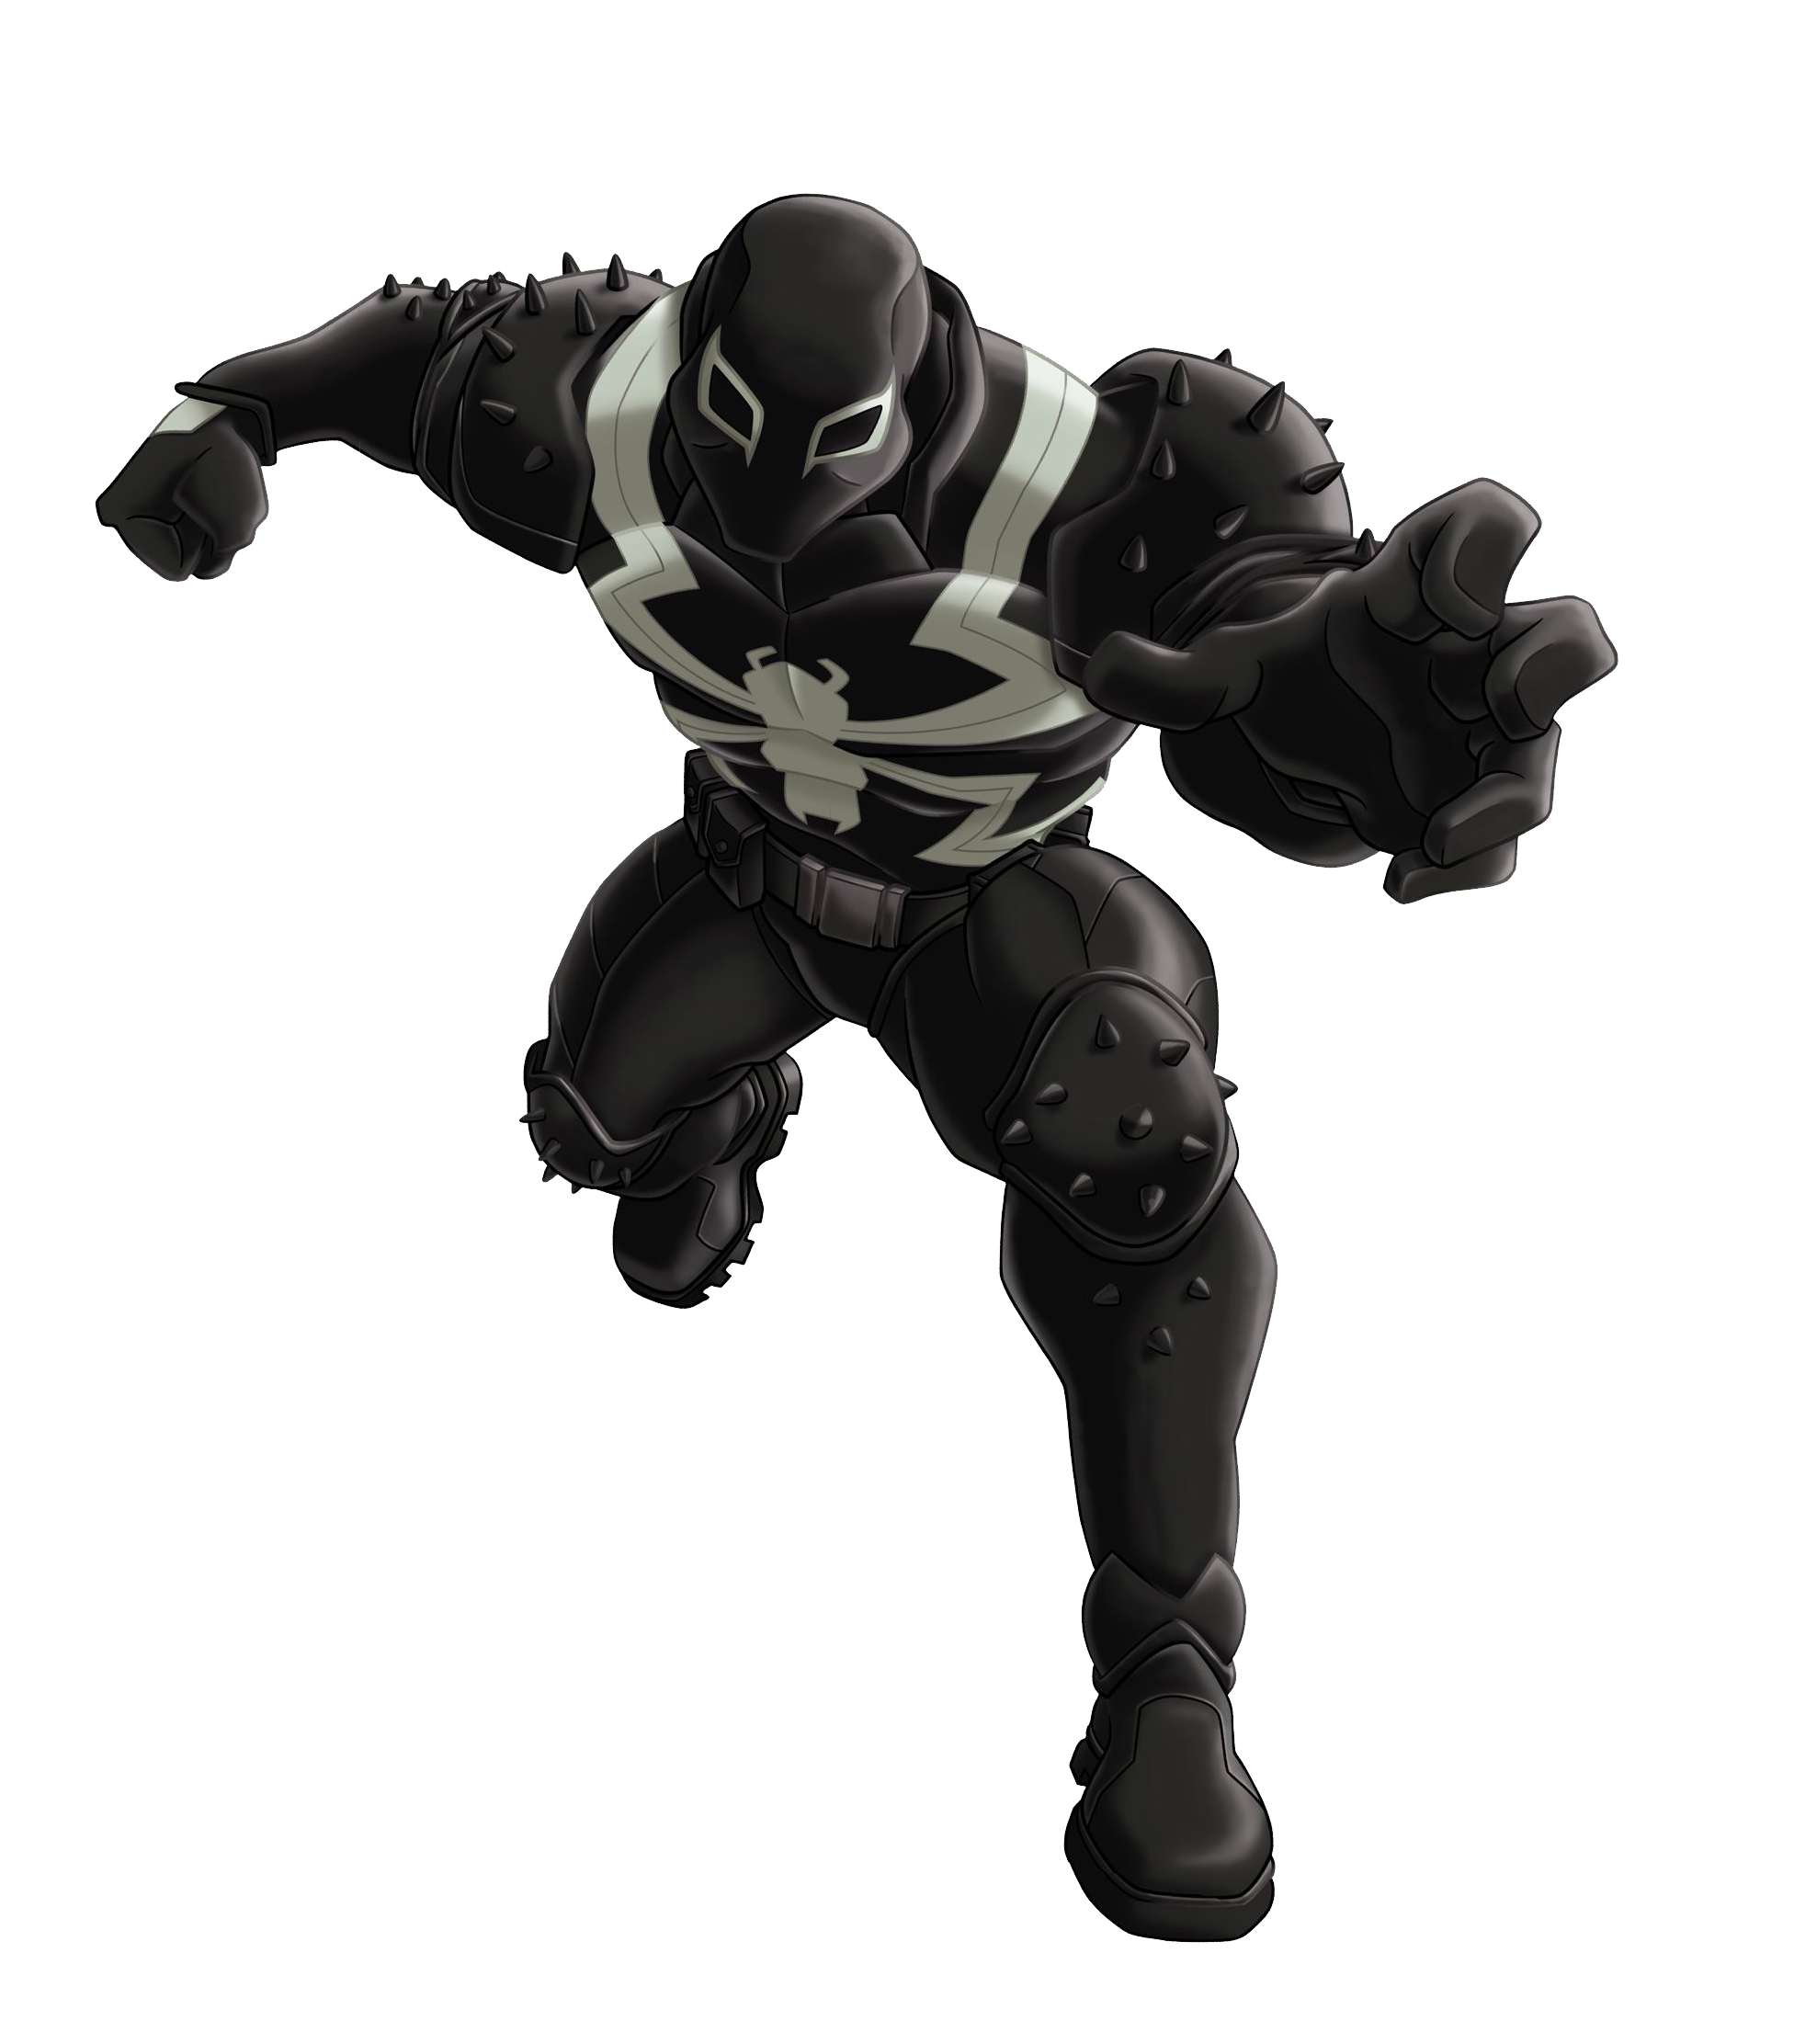 agent venom ultimate spider man animated series wiki fandom powered by wikia. Black Bedroom Furniture Sets. Home Design Ideas